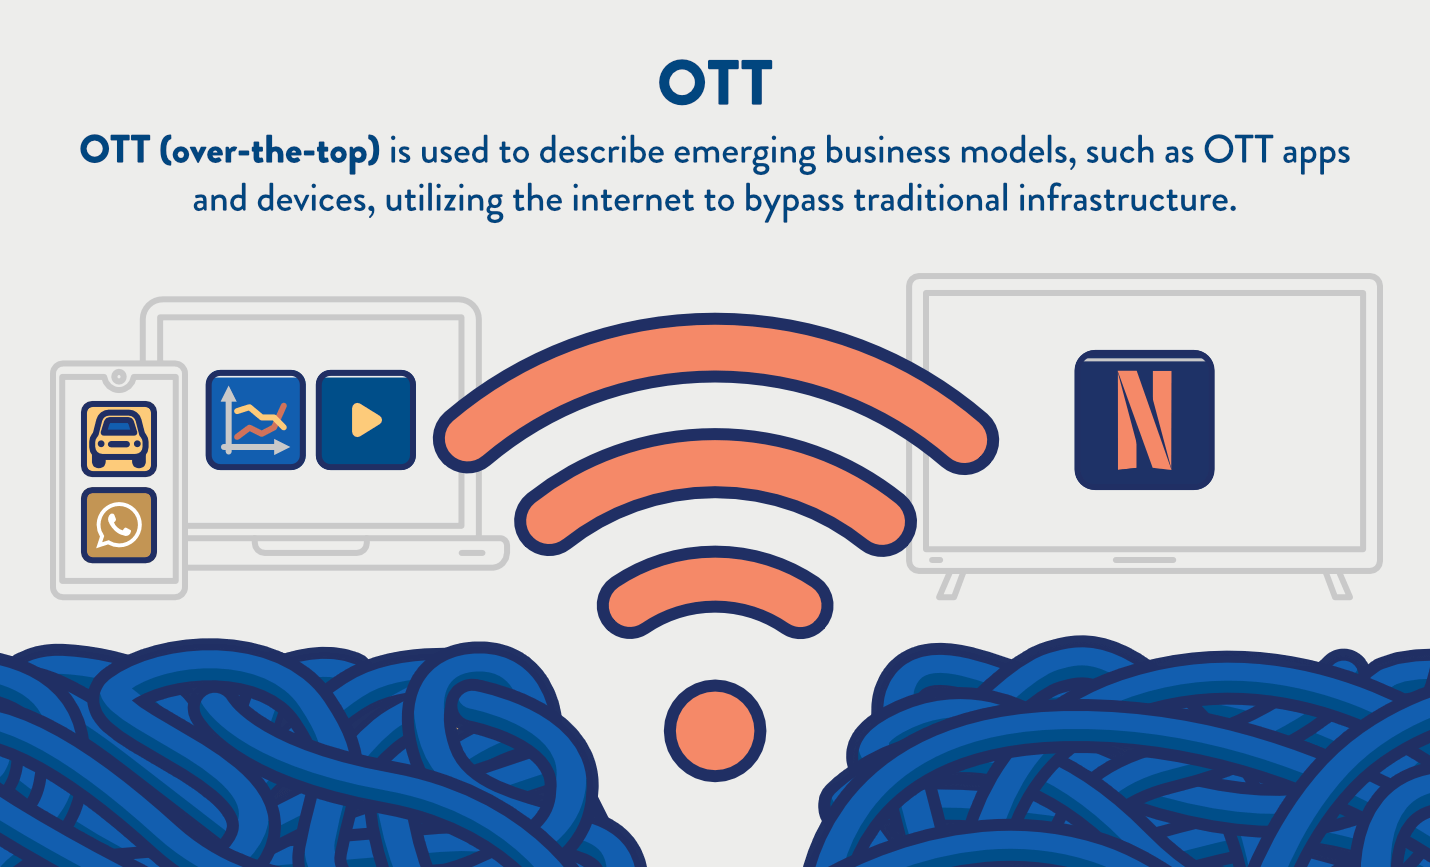 definition of OTT and how this technology disrupts industries